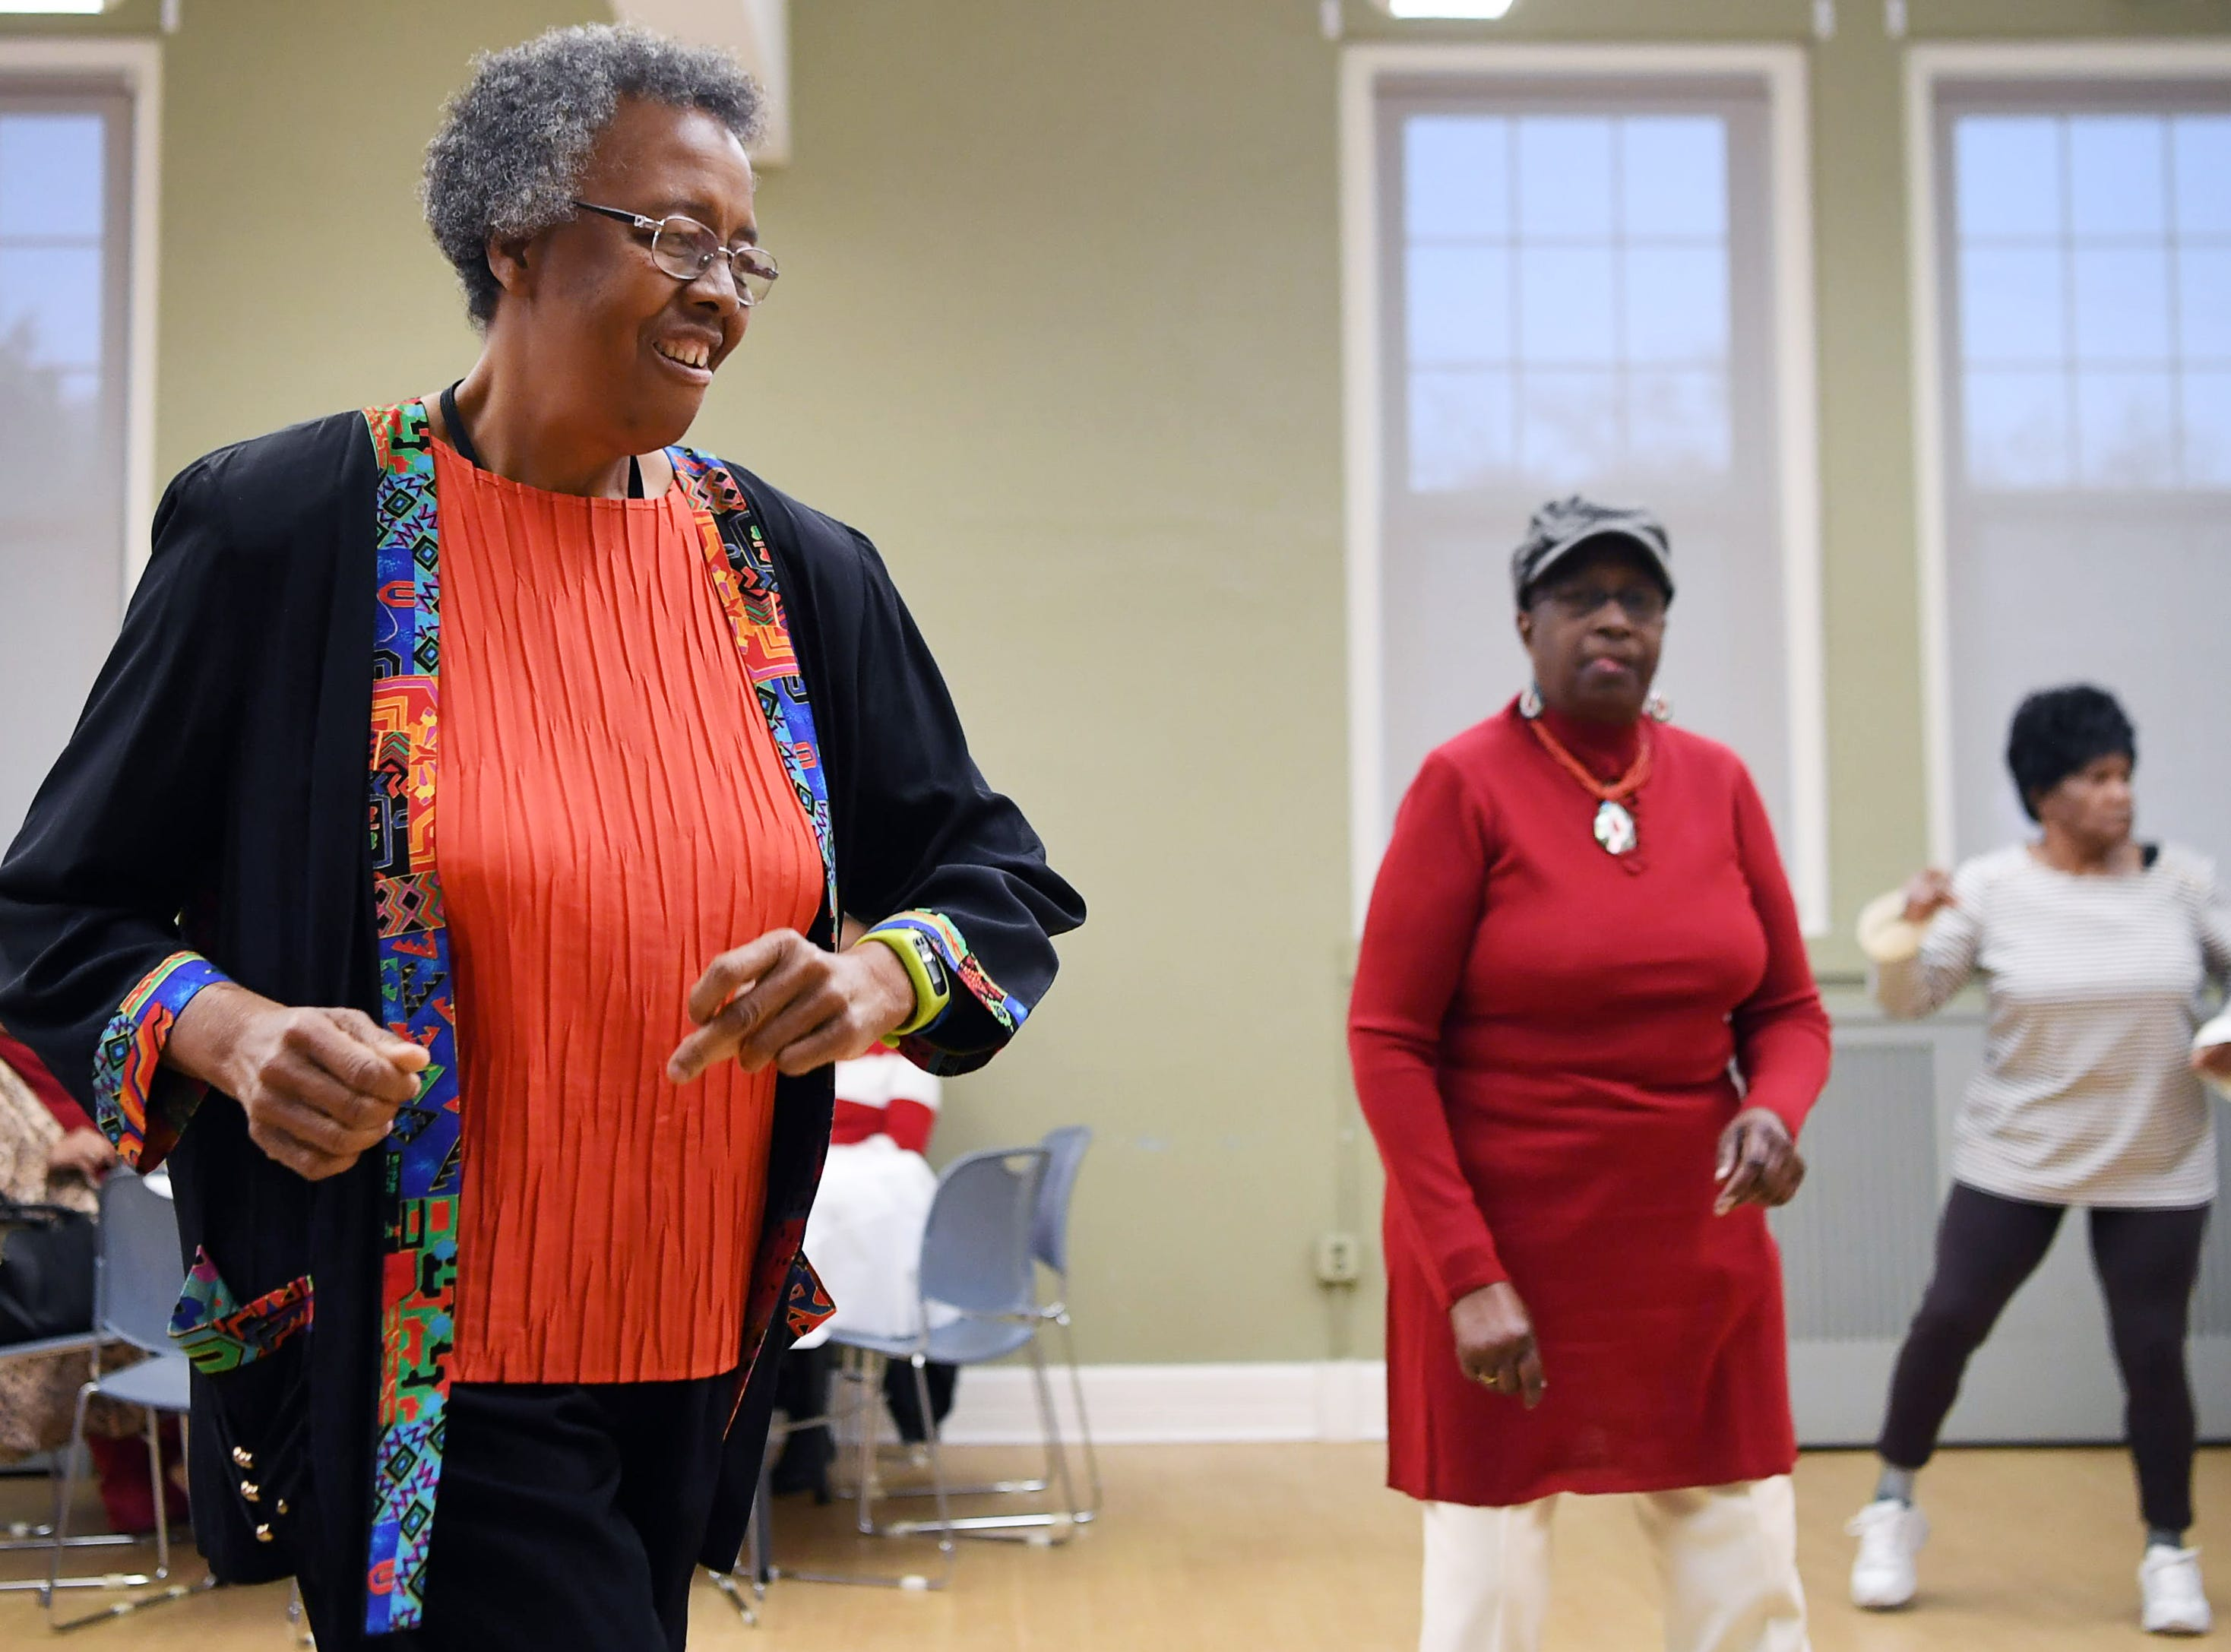 From left, Cynthia Byrd, Theresa Bowan and Effie Kelly dance during the District 9 senior club Valentine social at the Stephens-Lee Recreation Center in Asheville Feb. 12, 2019.